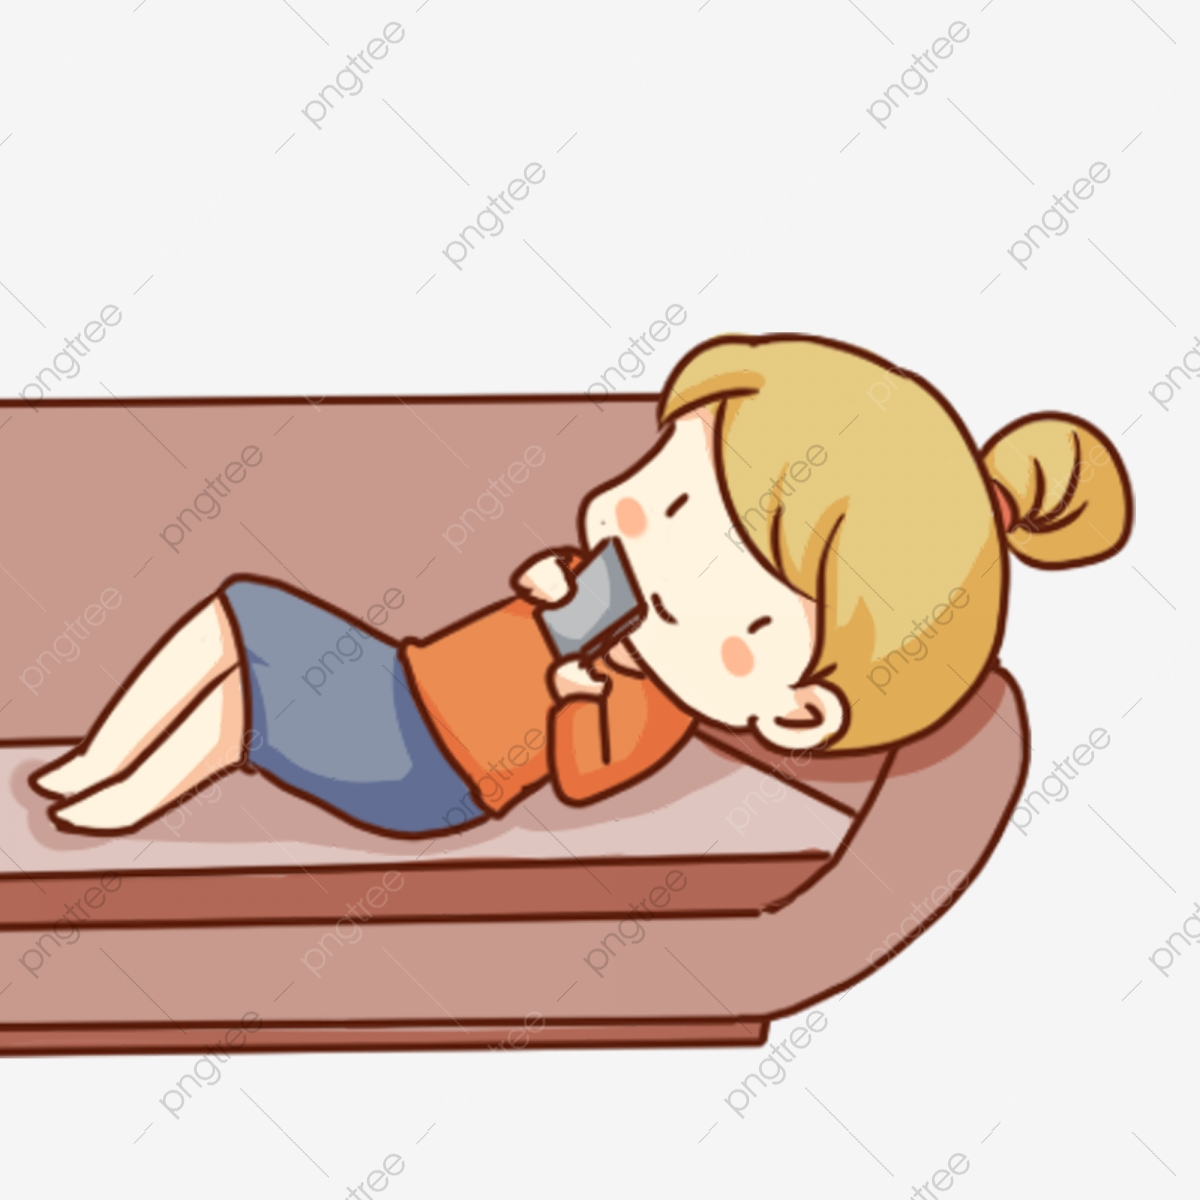 Couch clipart lie on couch. Hand drawn cartoon girl